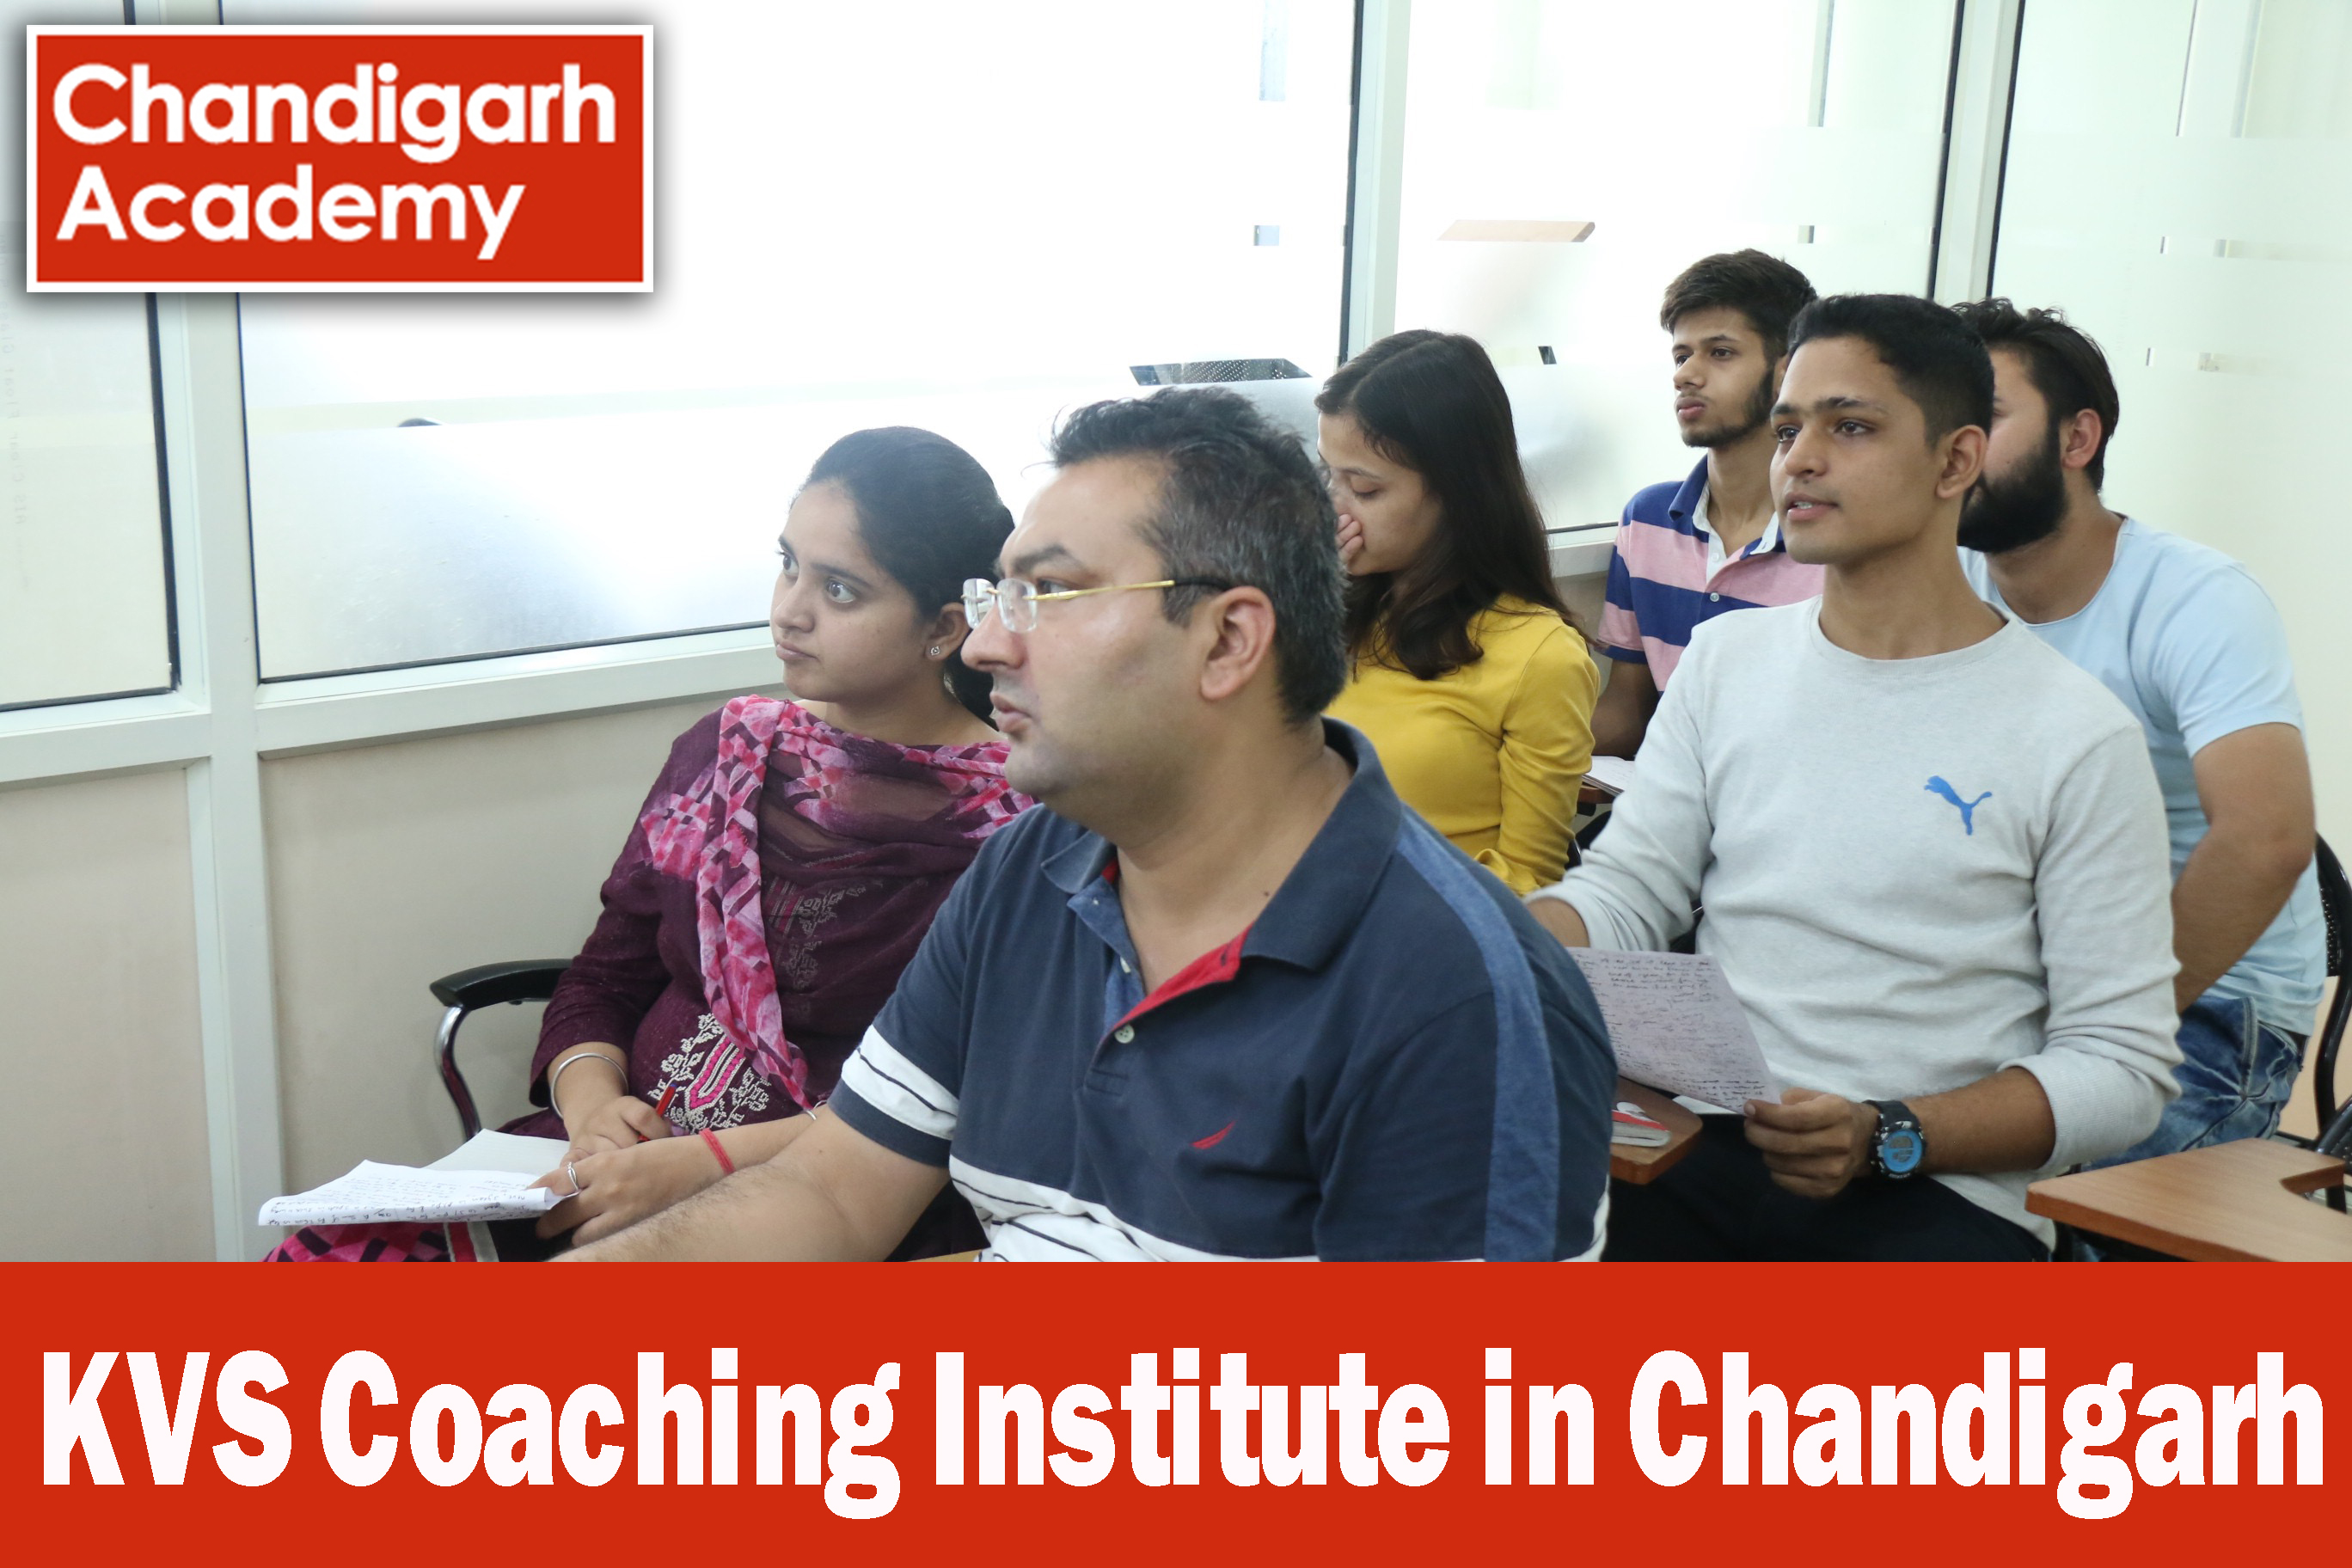 kvs coaching instutute in chandigarh